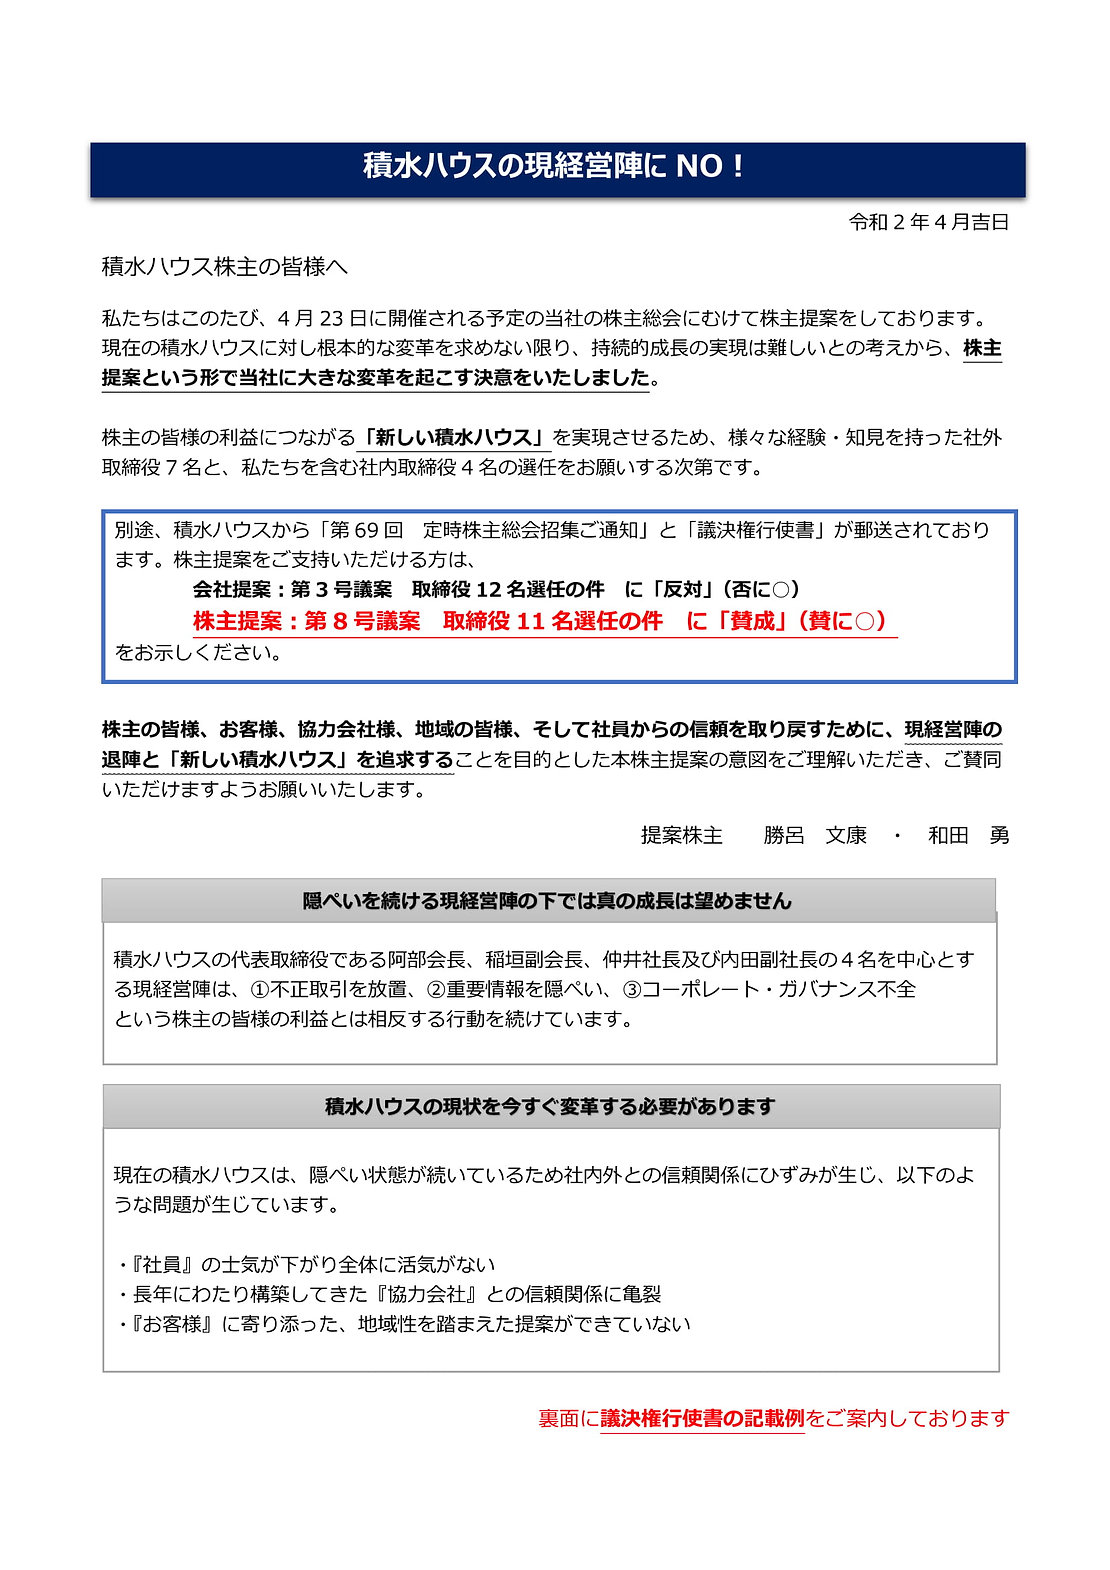 Voting Instructions (J)_2020_04_09-1.jpg